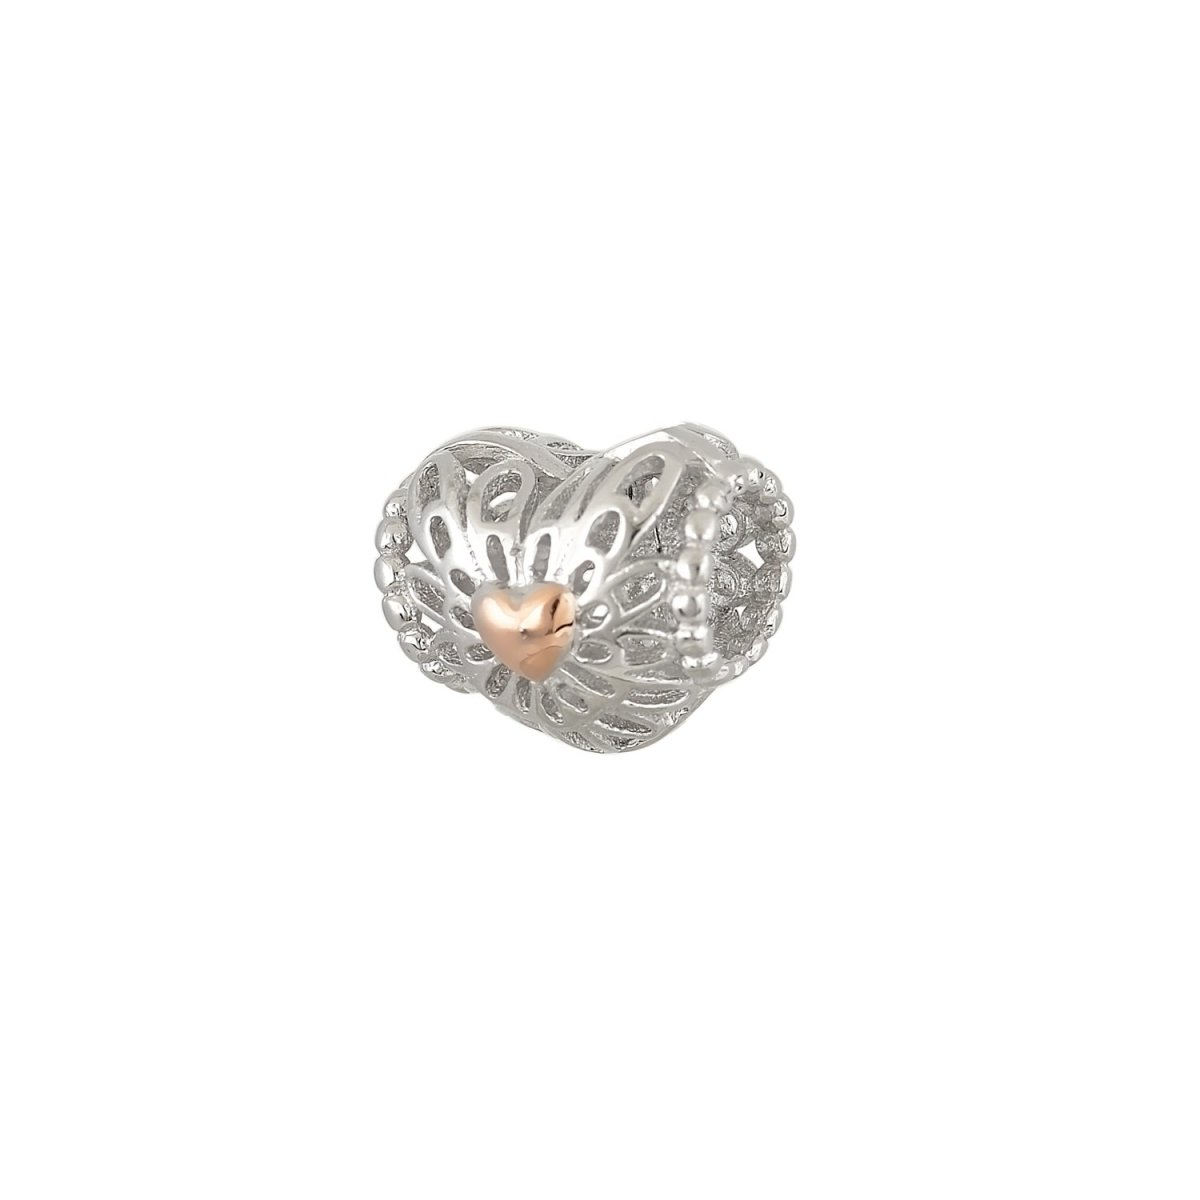 Pattern for Bracelet D32W Heart From Platinum Silver - Goldy Jewelry Store